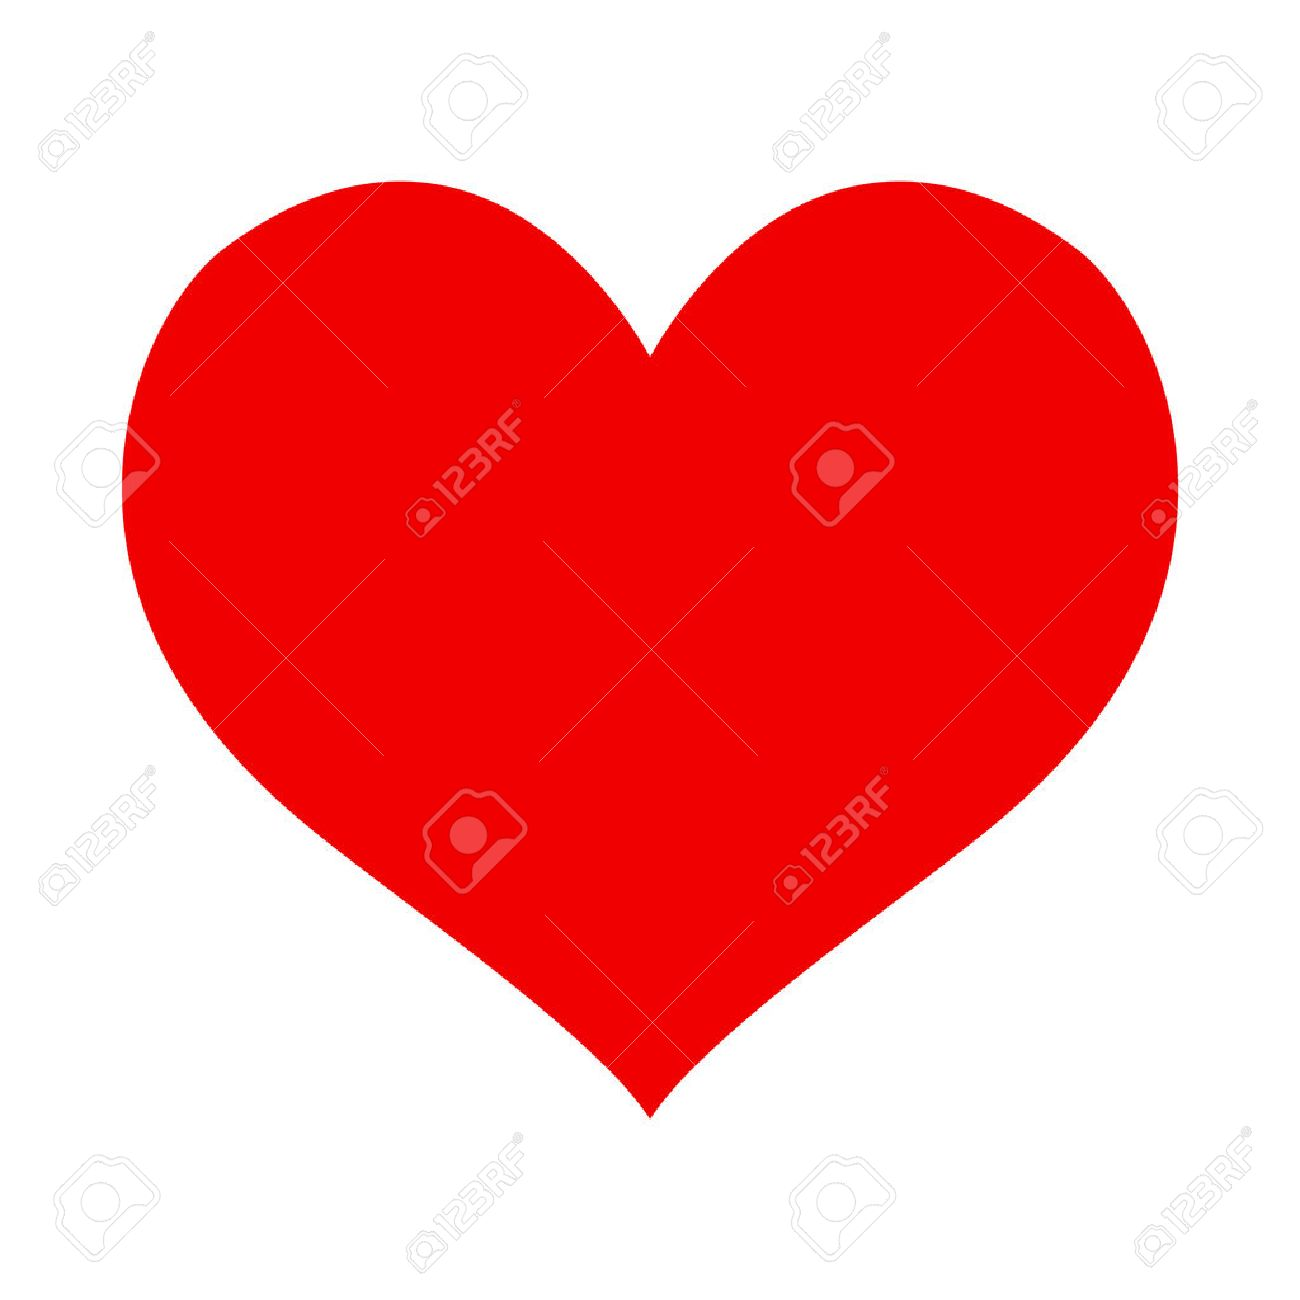 heart vector icon royalty free cliparts vectors and stock rh 123rf com heart vector ai heart vector file